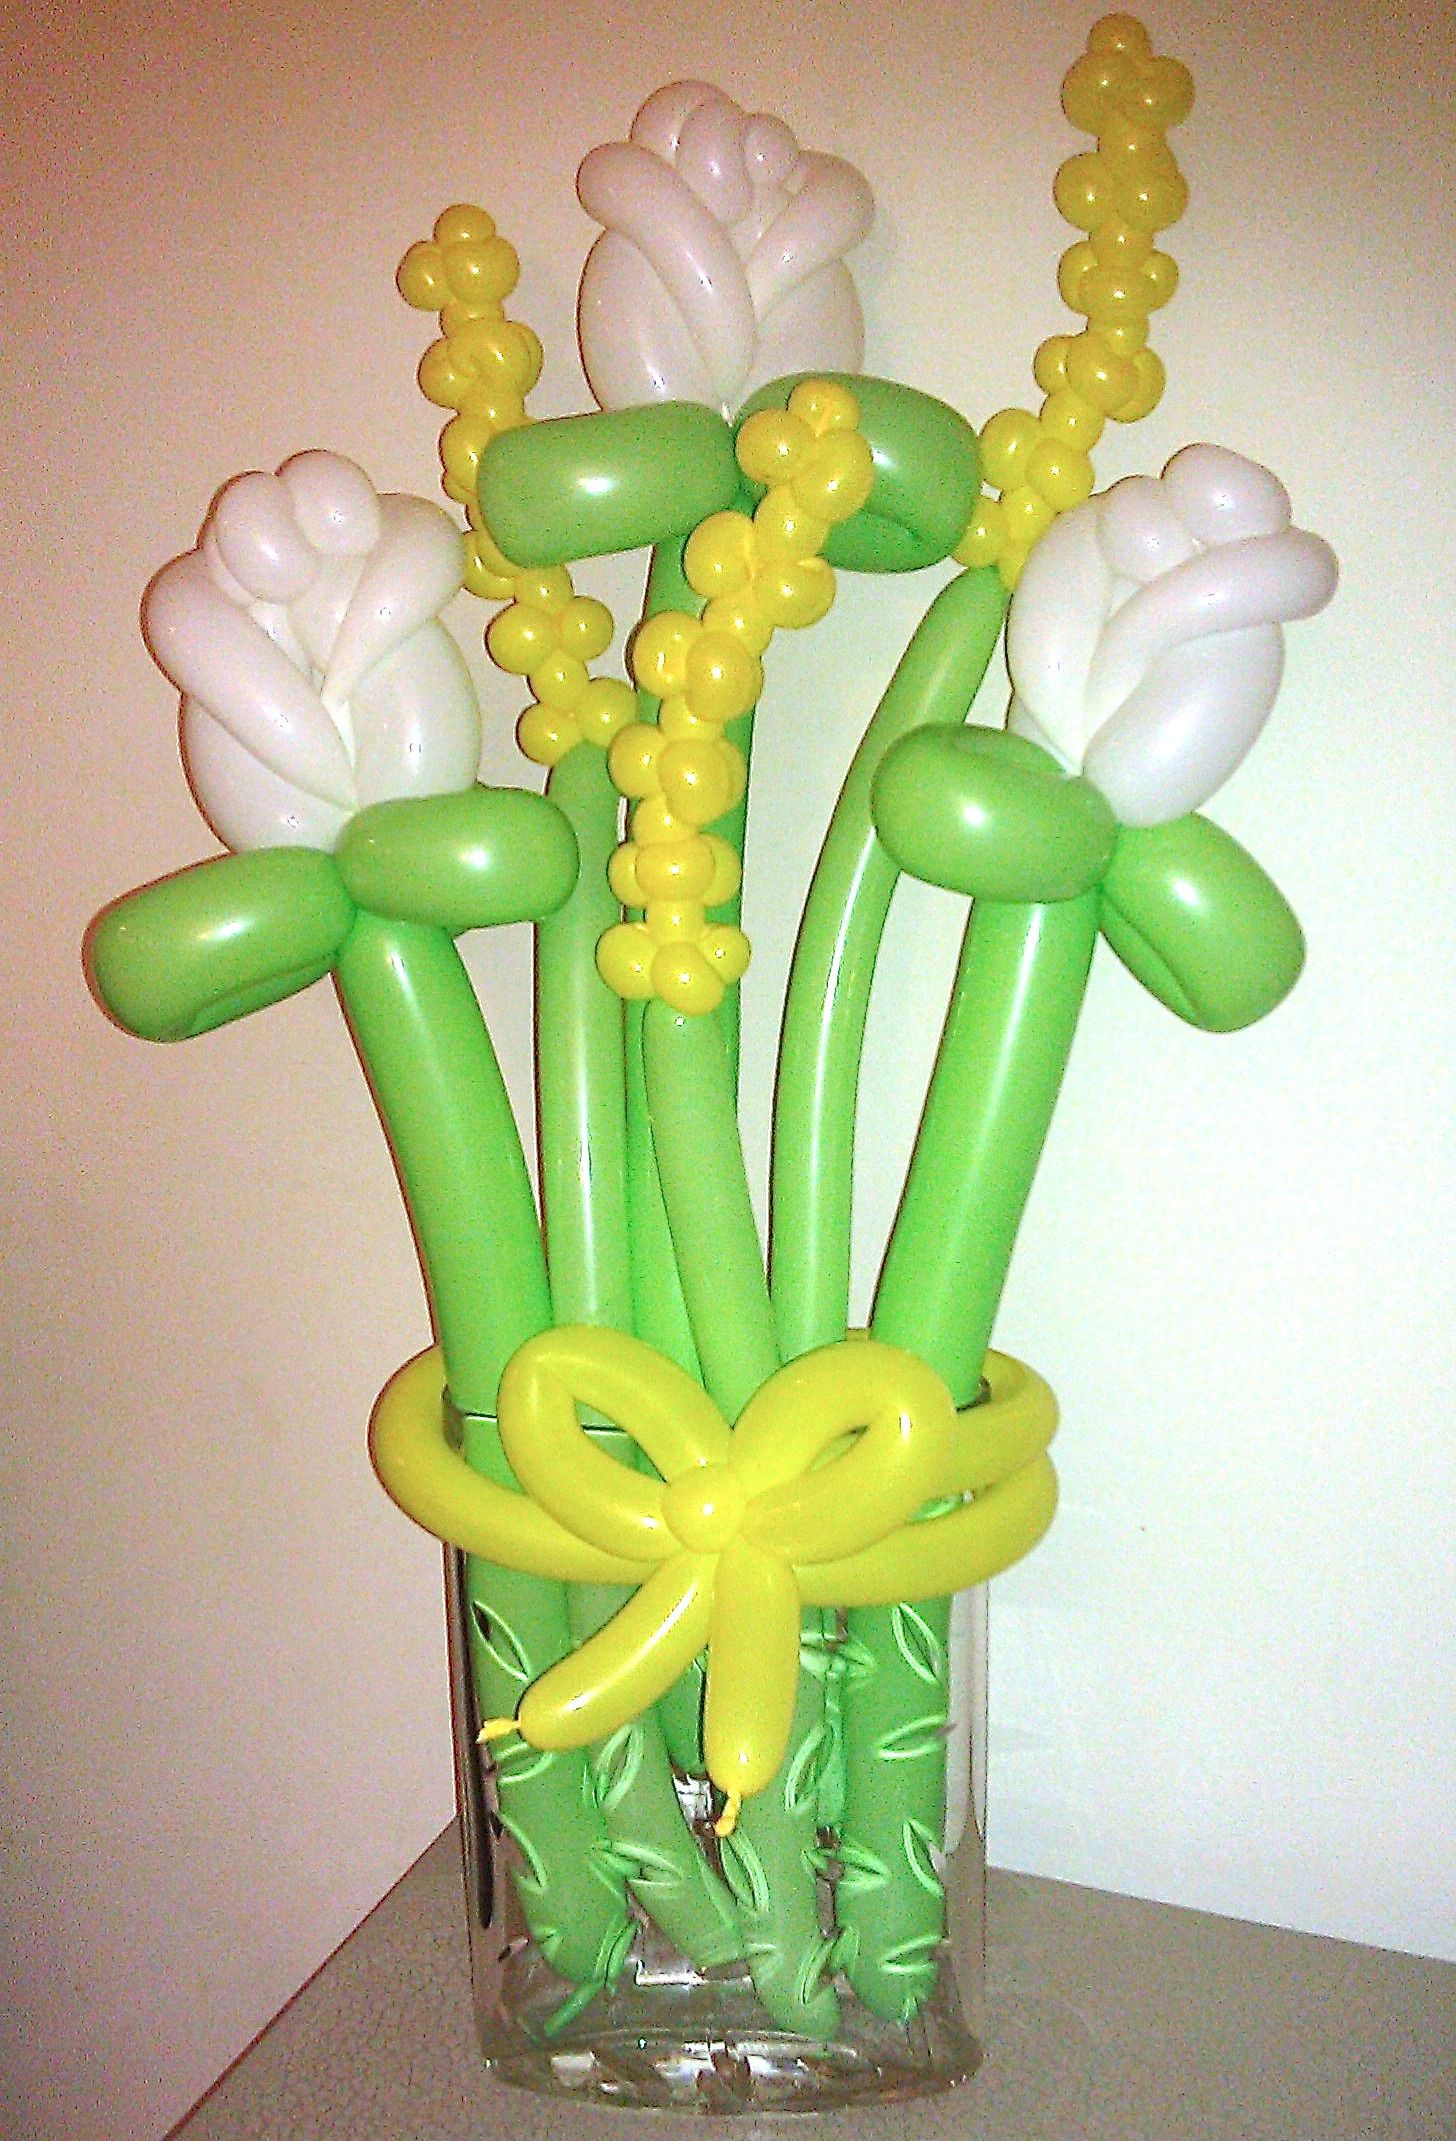 Balloon flower bouquet flowers цветы из шаров